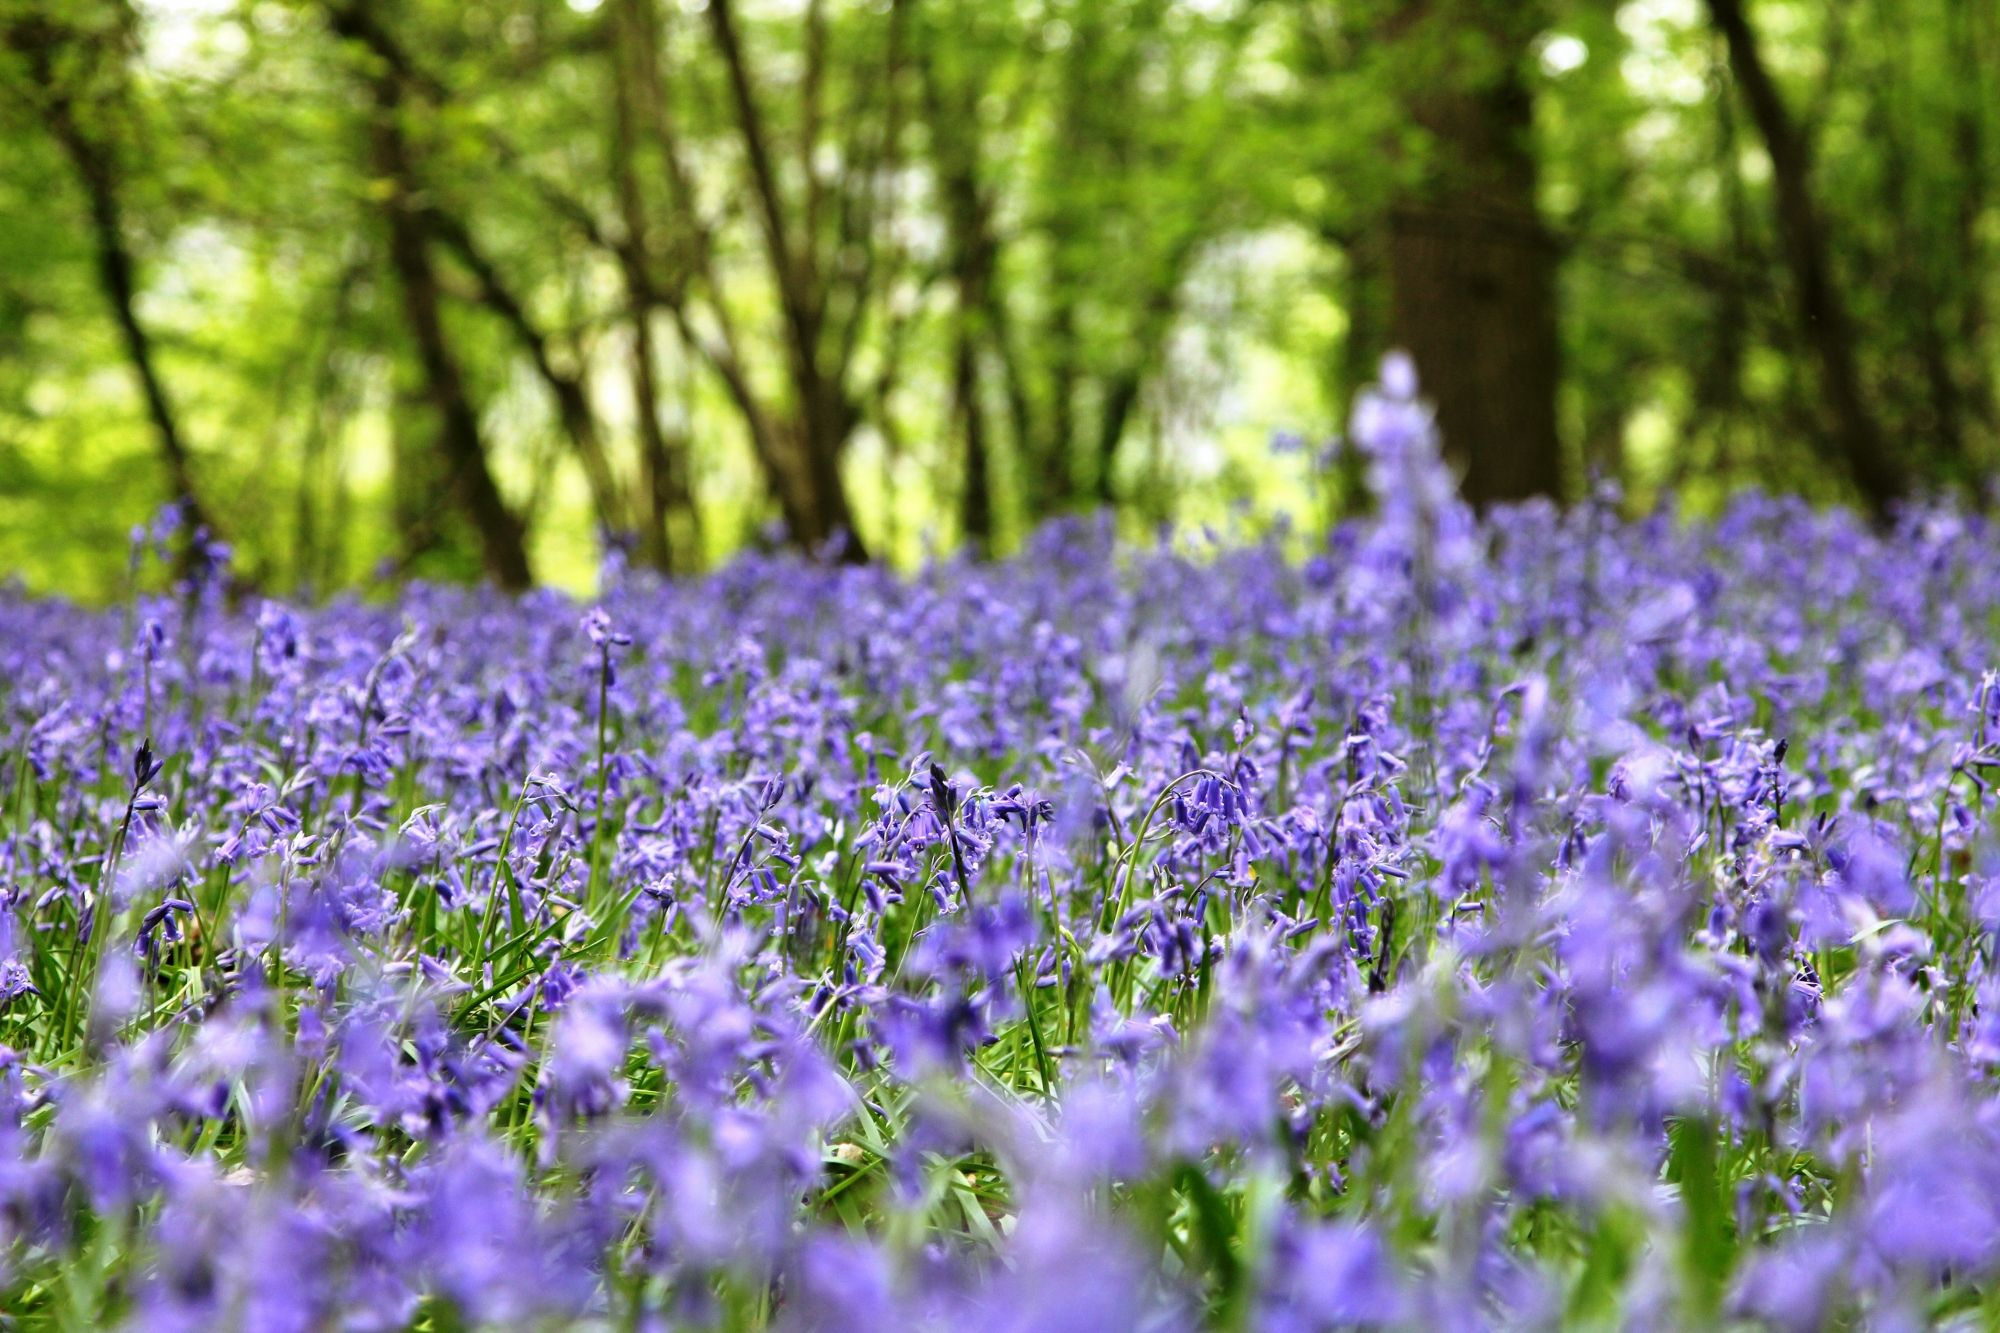 A Haze Of Blue Unfurling Across The Woods Have You Spotted Any